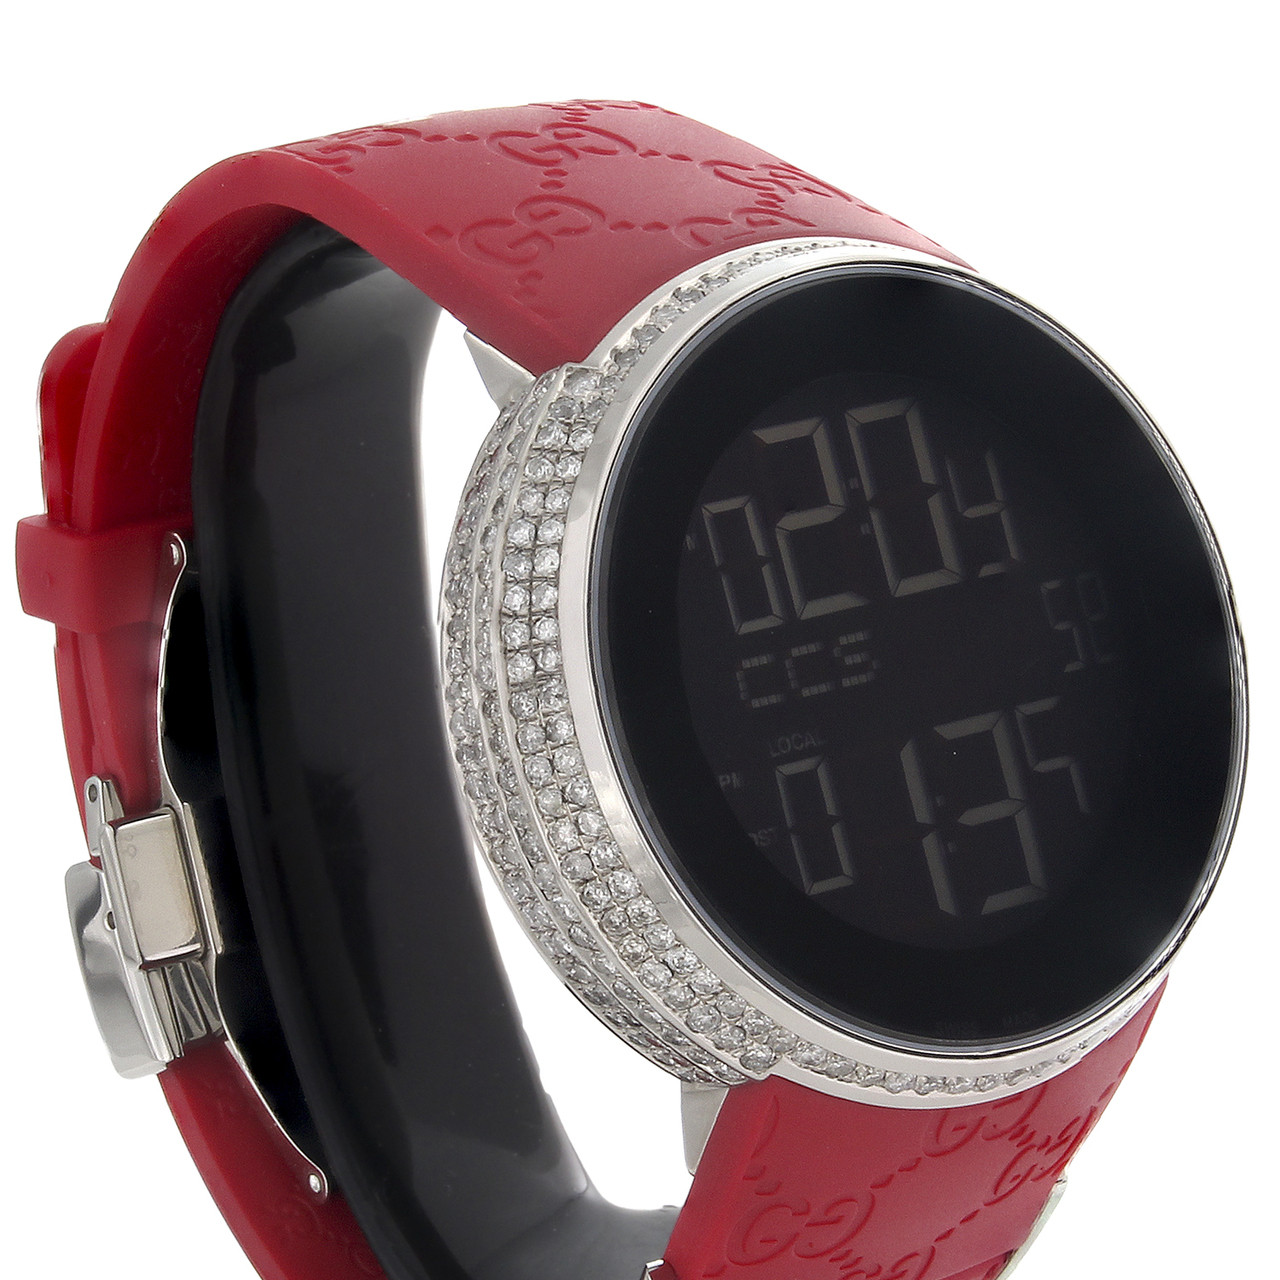 91d4a12b25d ... Gucci Diamond Watch YA114212 Custom Full Case Digital Red I-Gucci Band  4 CT. Image 1